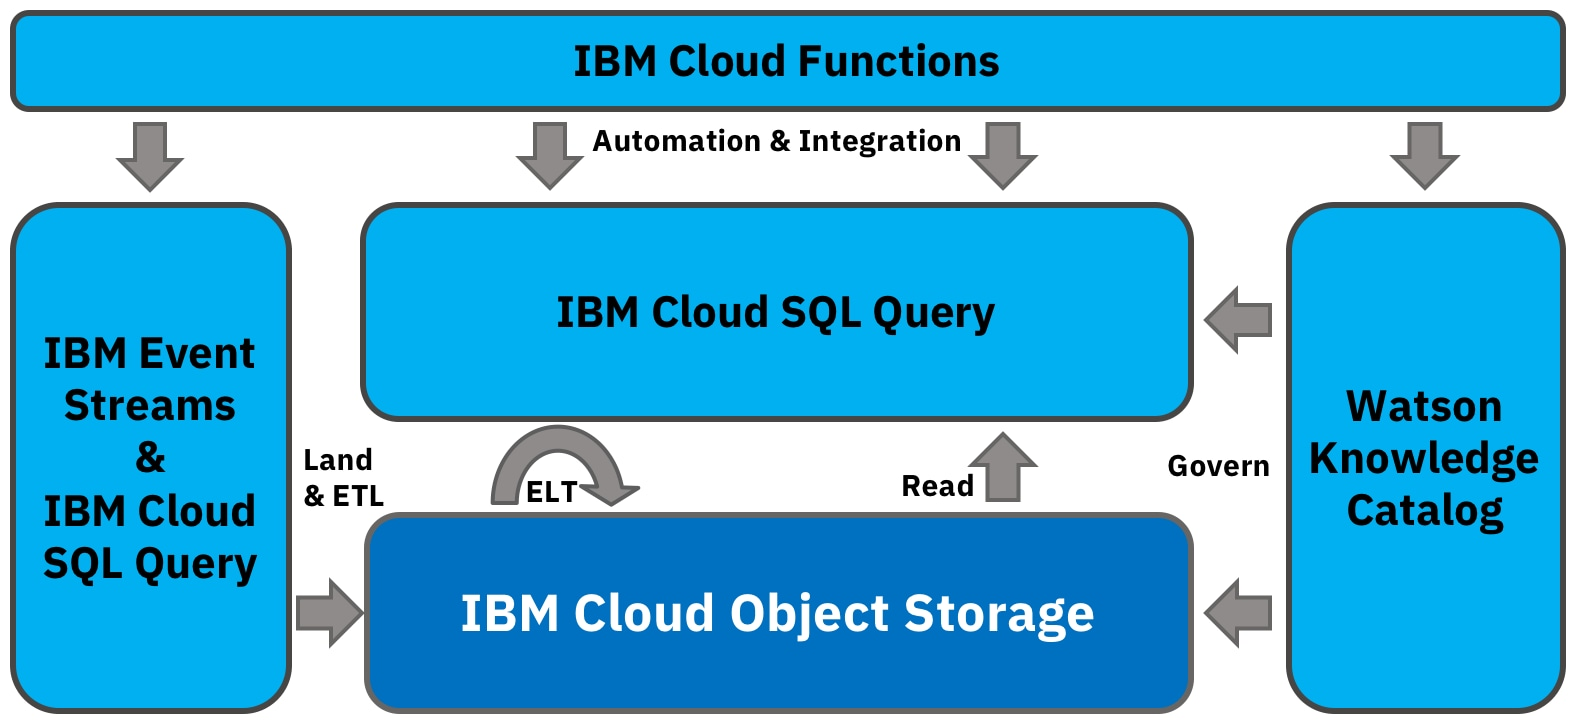 Serverless data and analytics in IBM Cloud